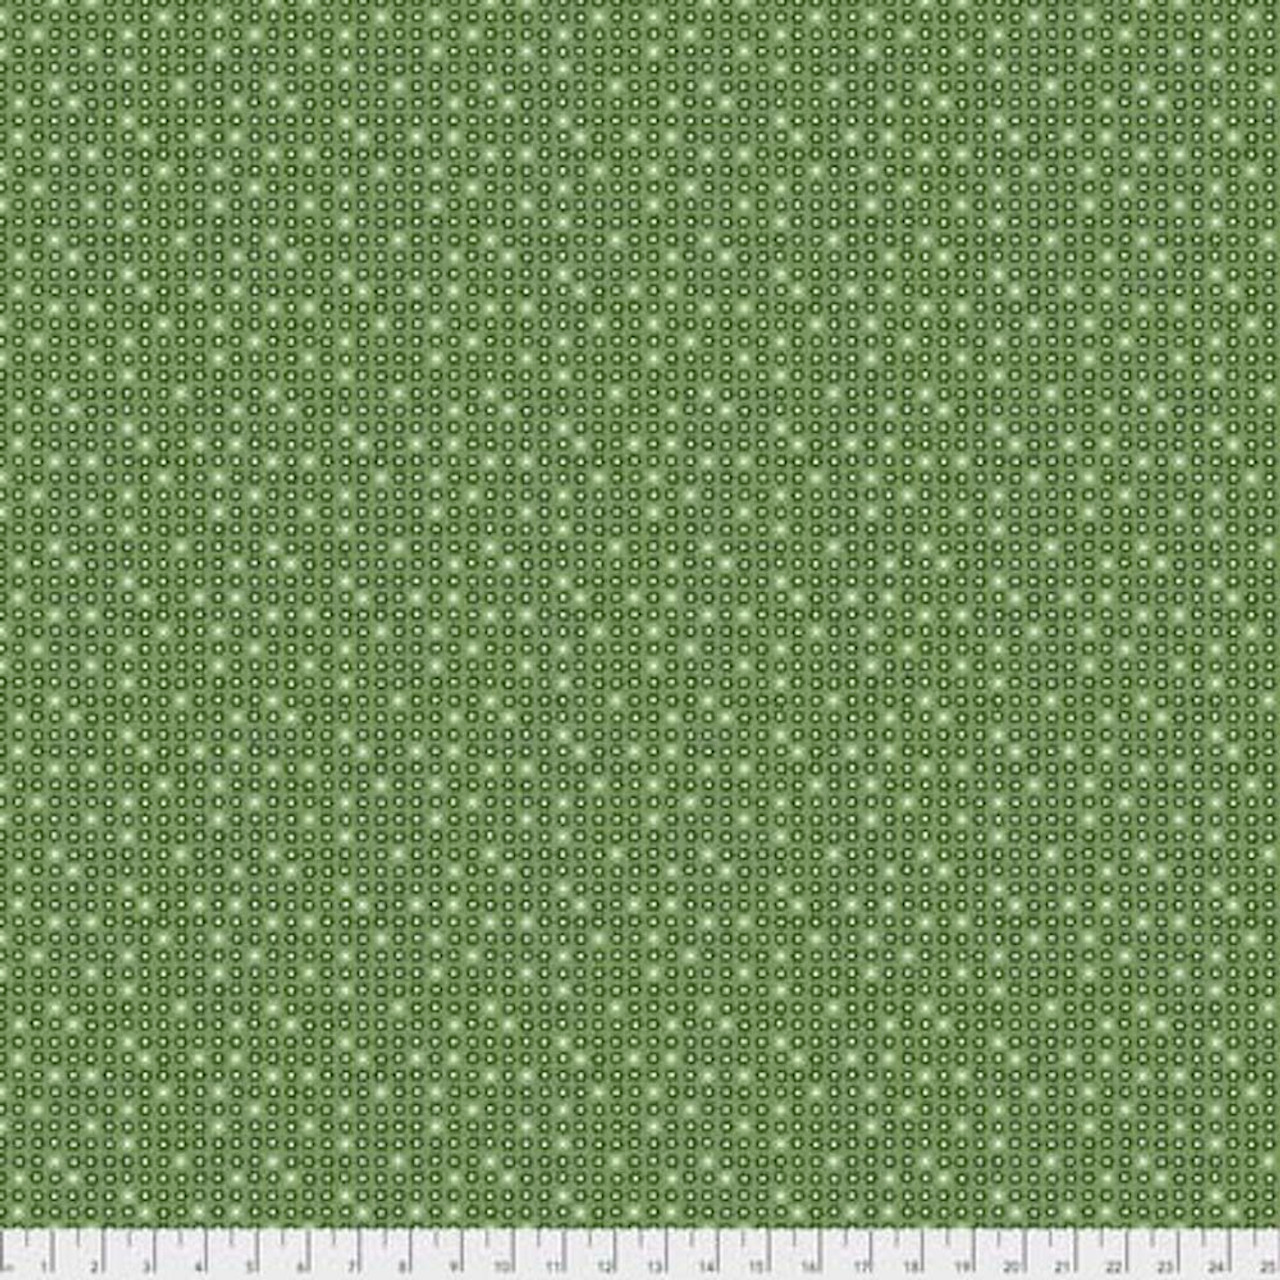 Coats PWCC013 Daisy Daze Daisies Green Cotton Quilting Fabric By Yd